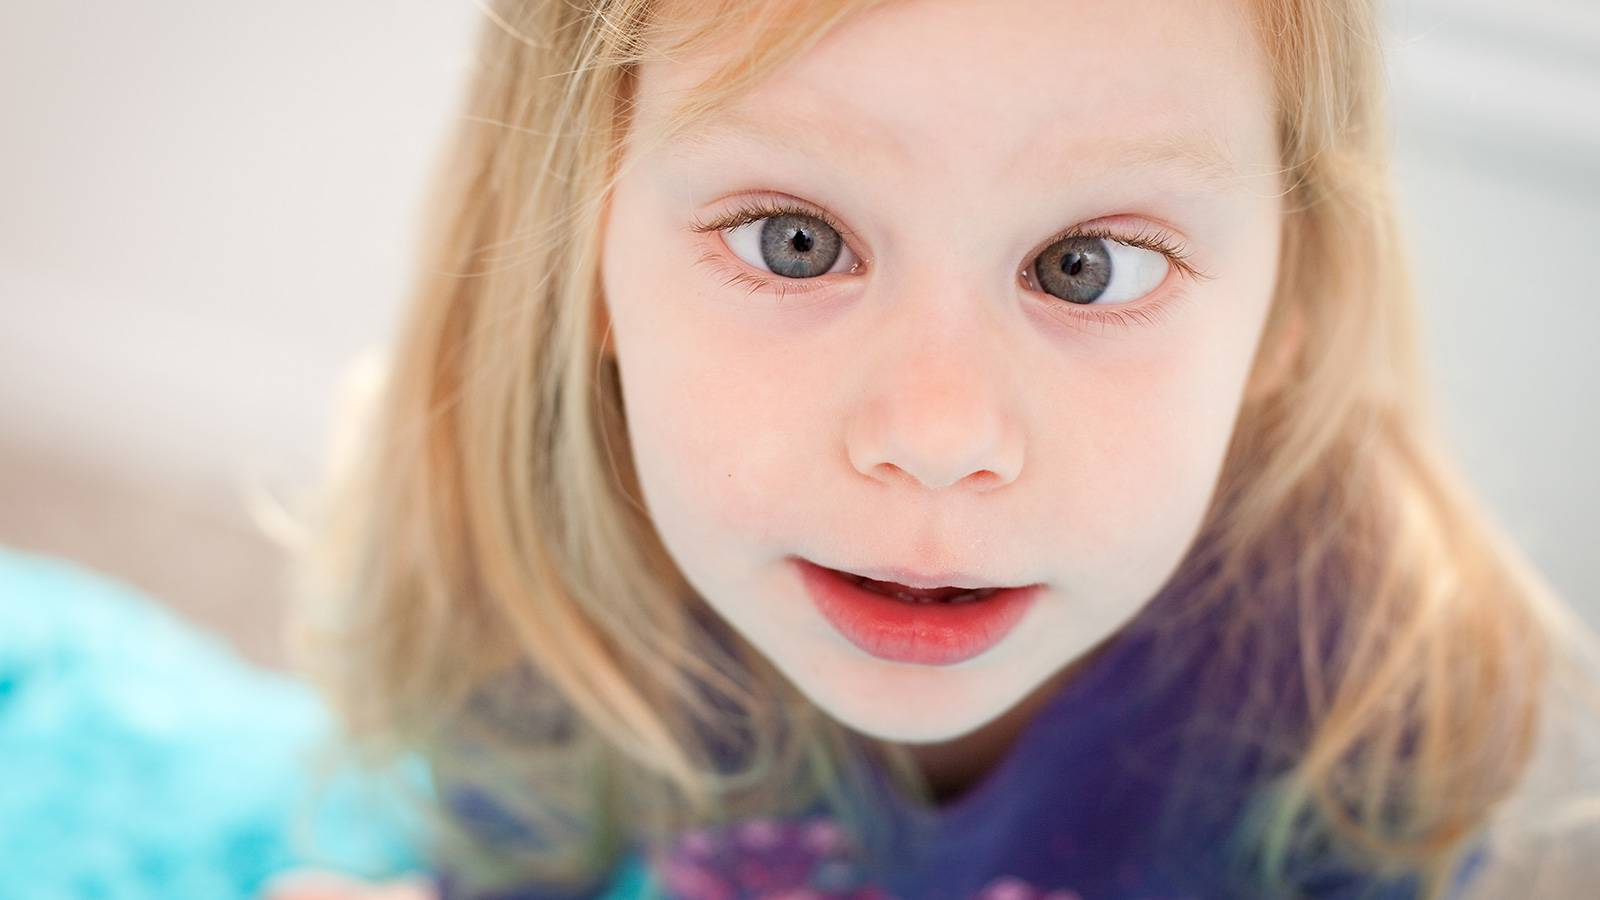 Tots-Toddler-eye-problems-you-may-not-know-about-1